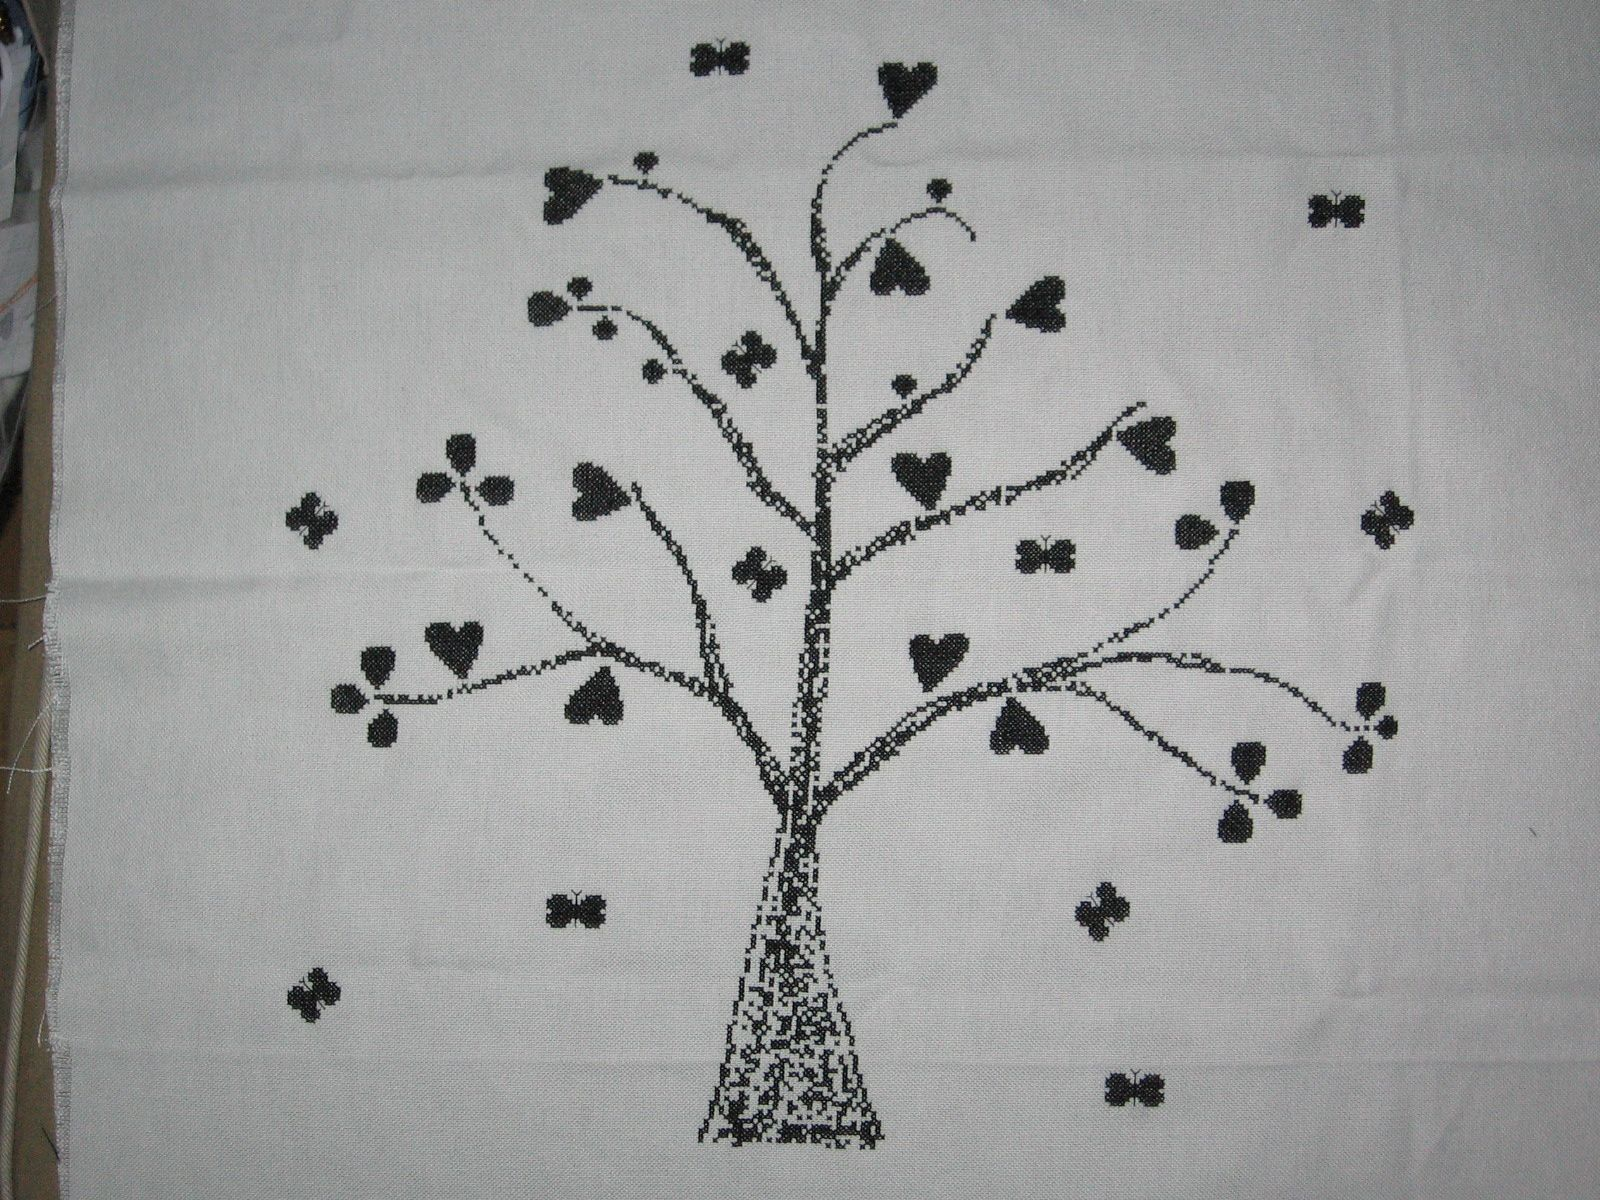 Pin arbre genealogique toile froblog on pinterest - Stickers arbre genealogique ...